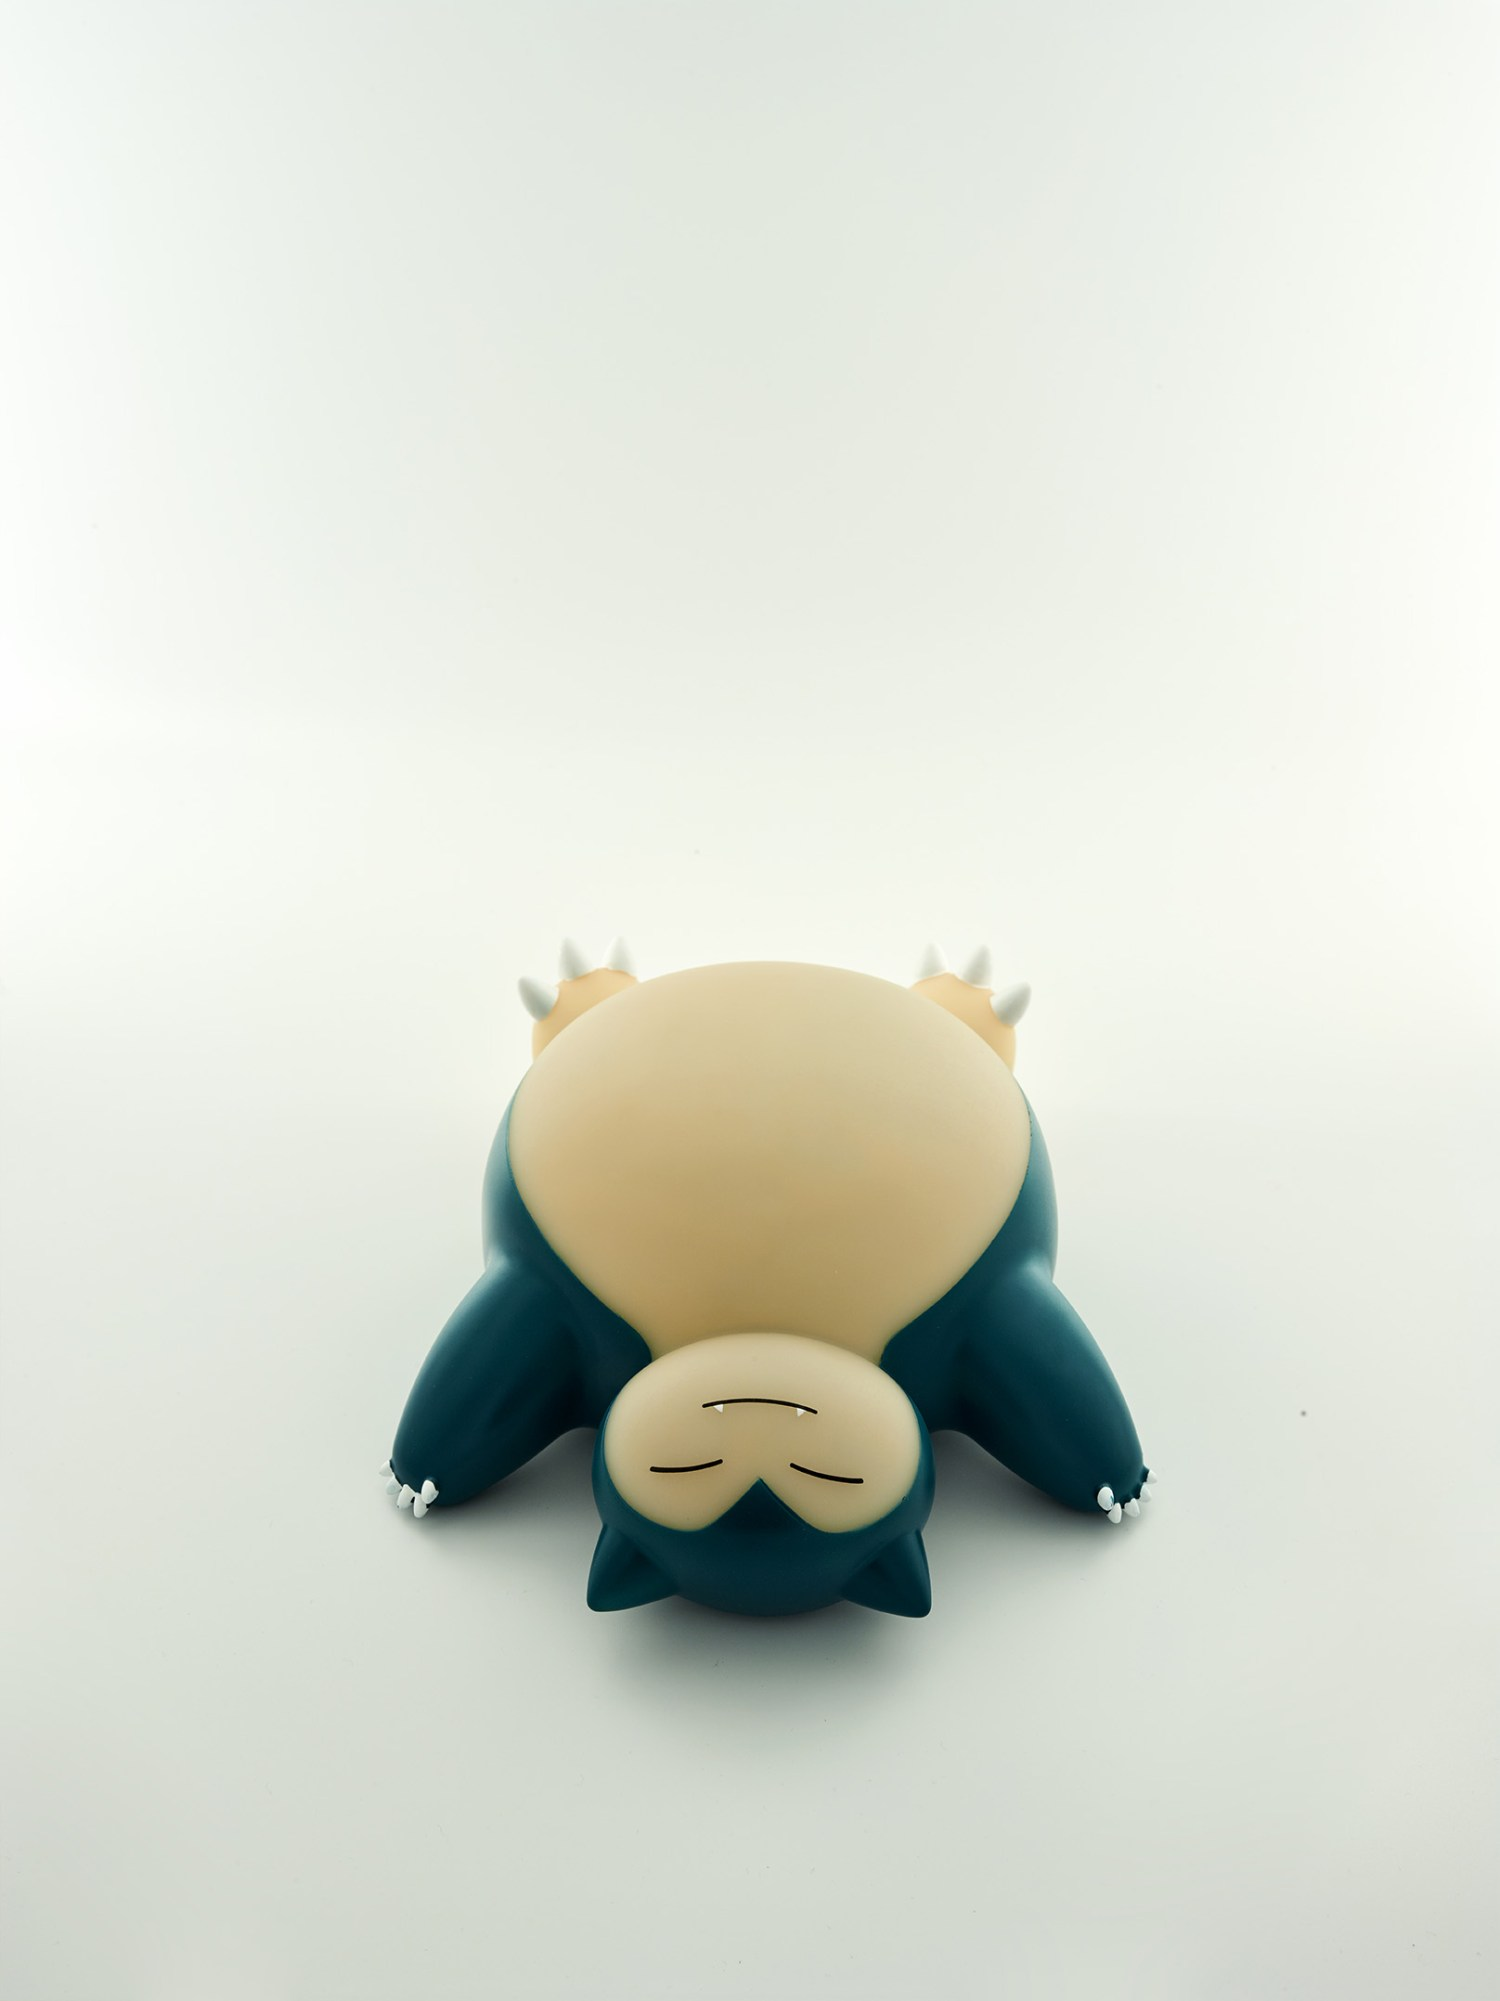 Pokémon snorlax led lamp top view